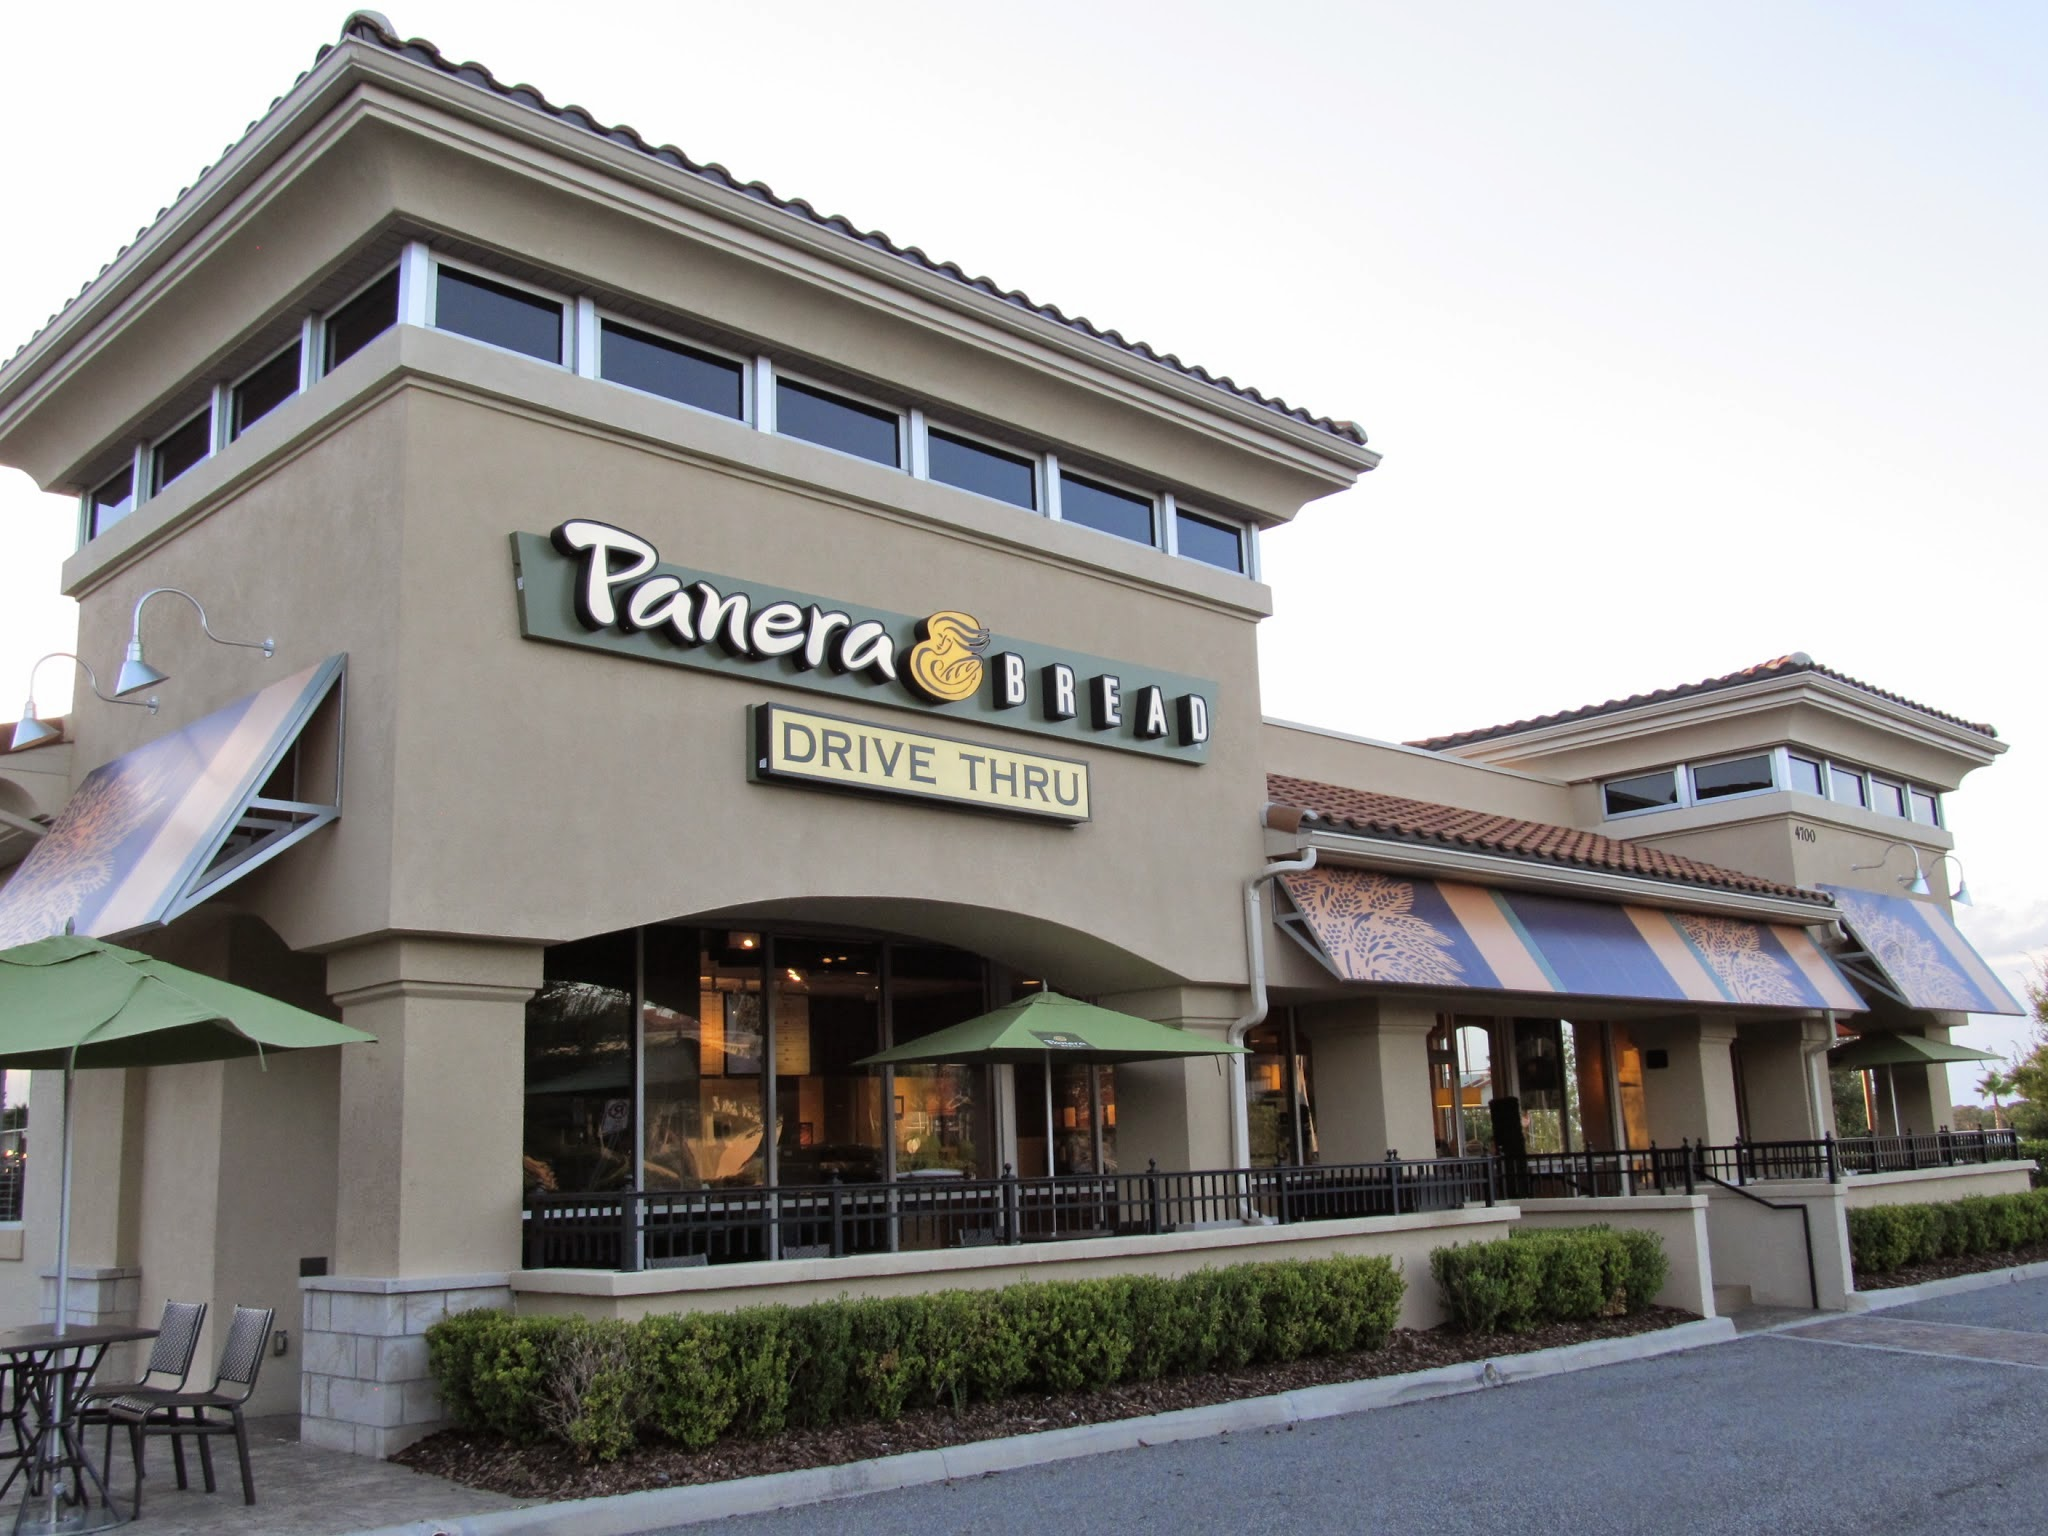 image relating to Panera Bread Printable Menu titled Panera Bread - Wikipedia